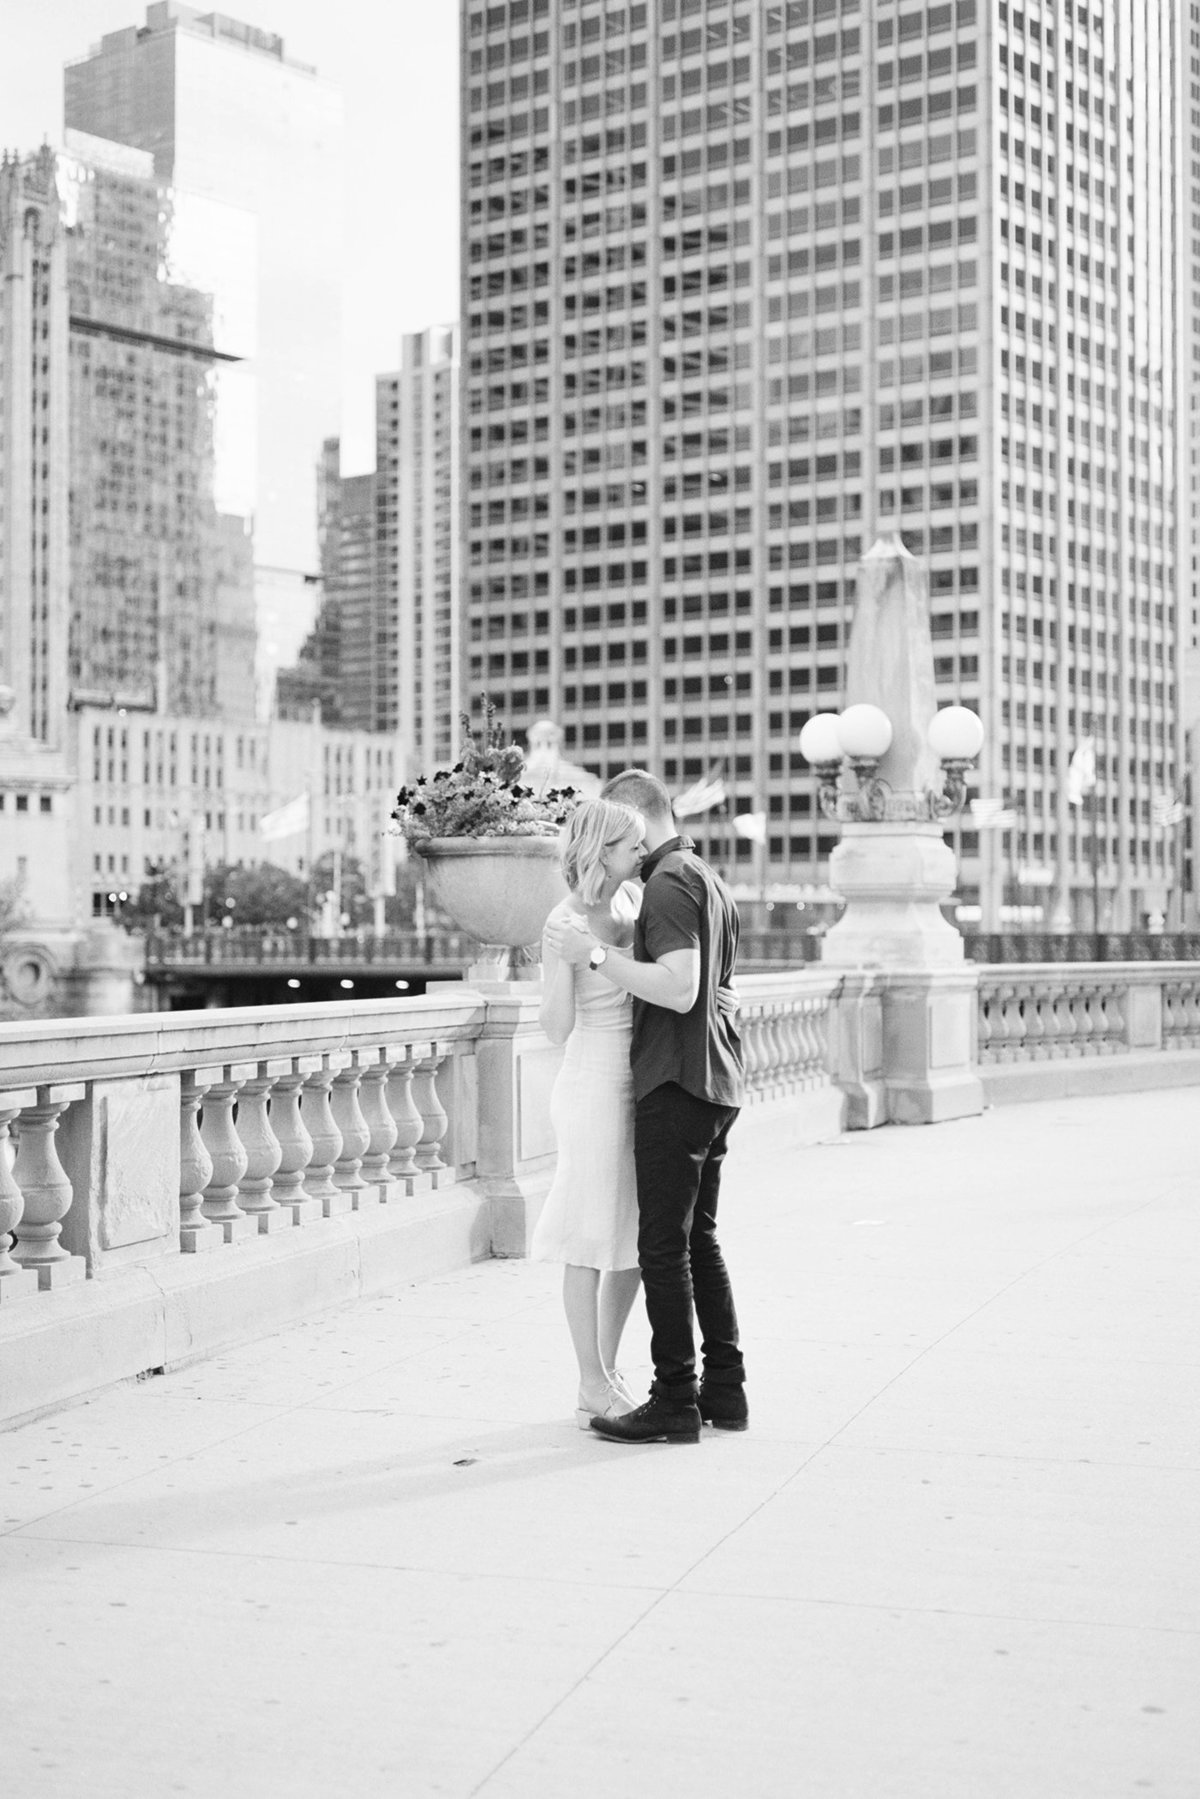 Chicago Wedding Photographer - Fine Art Film Photographer - Sarah Sunstrom - Sam + Morgan - Engagement Session - 6